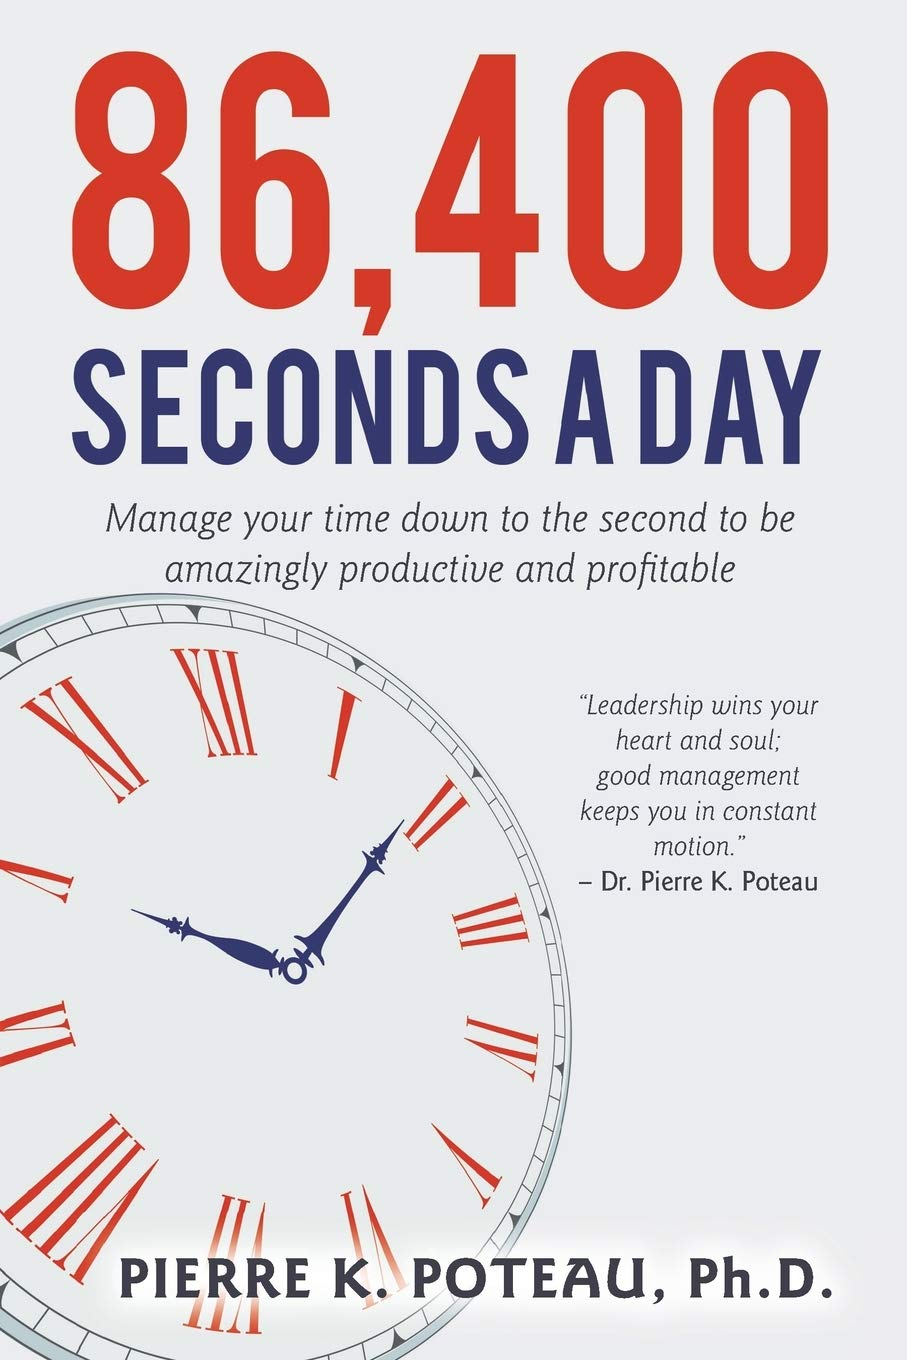 Image Of86,400 Seconds A Day: Manage Your Time Down To The Second To Be Amazingly Productive And Profitable.